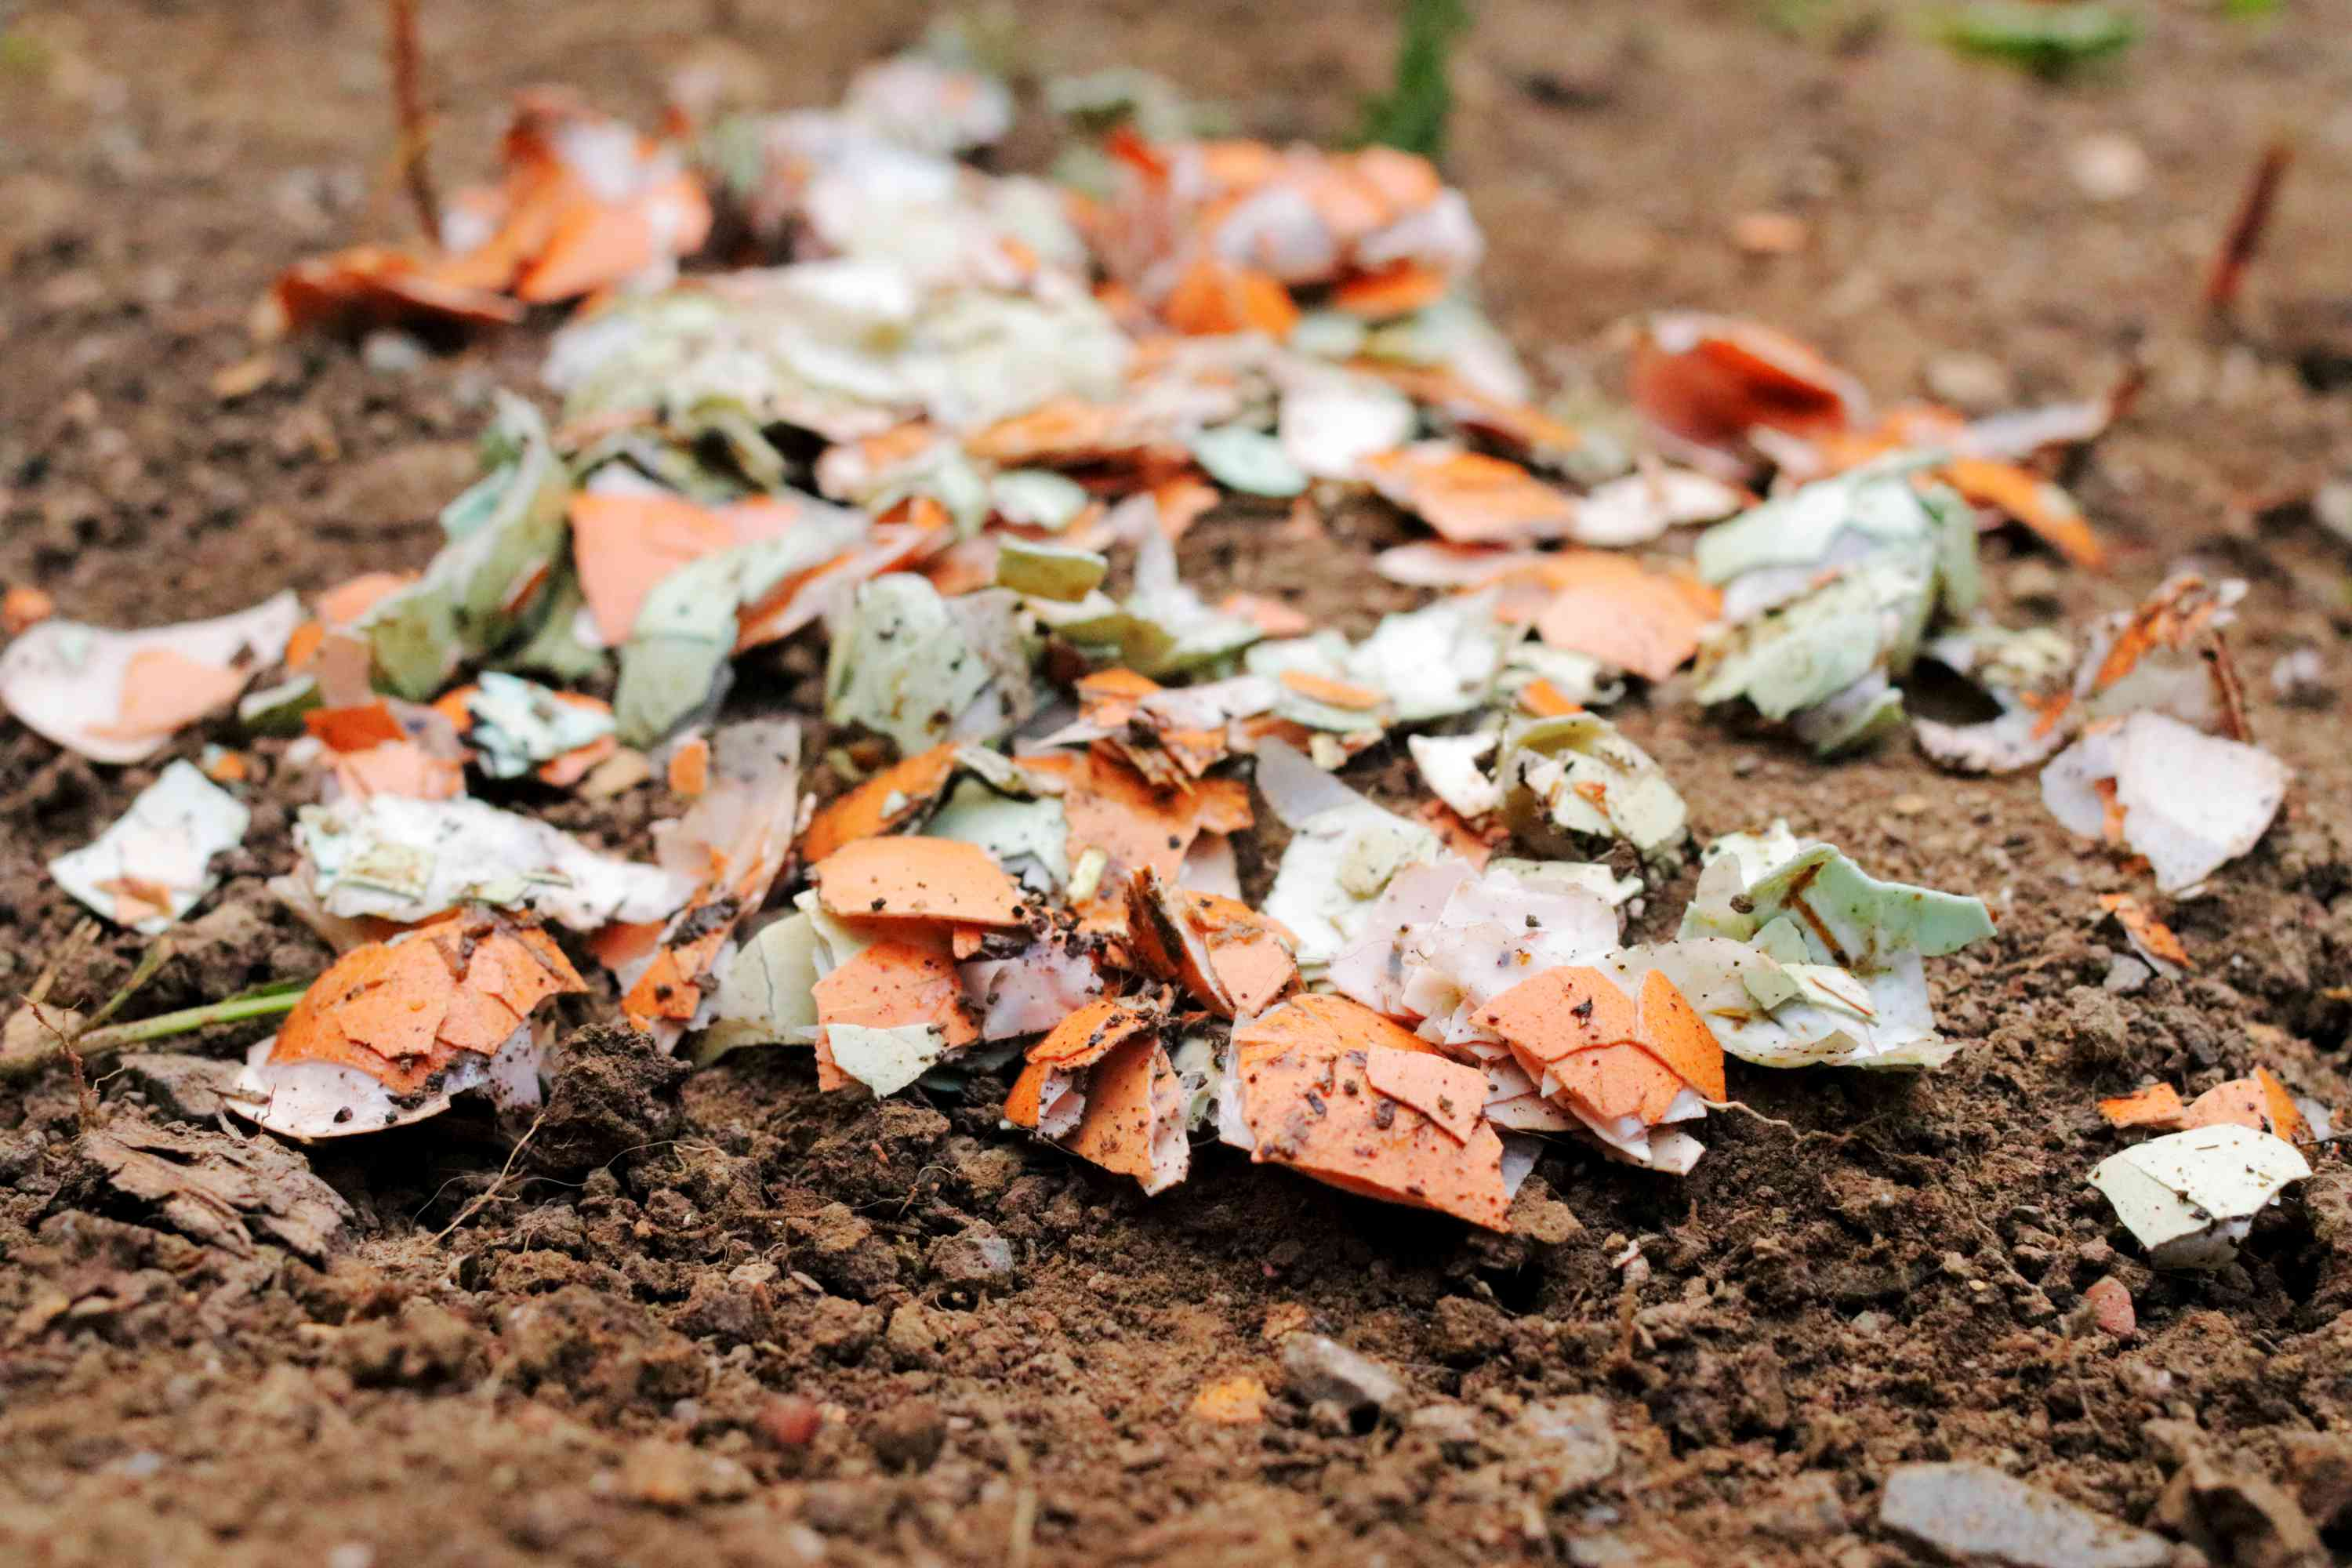 Crushed eggshells on dirt ground to deter feral cats closeup